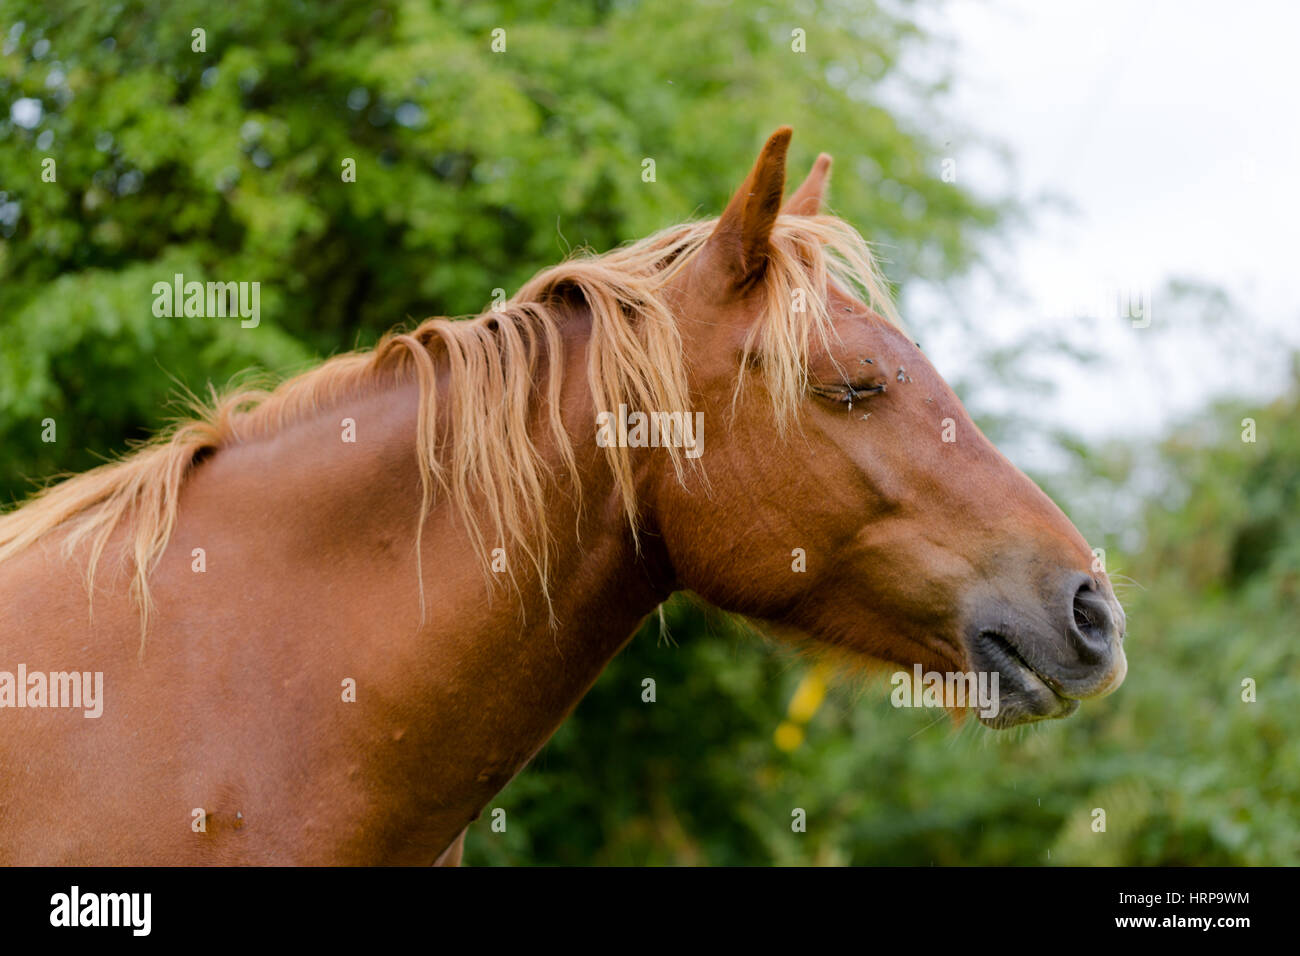 Wild brown beauty horse head close up portrait  Horse with